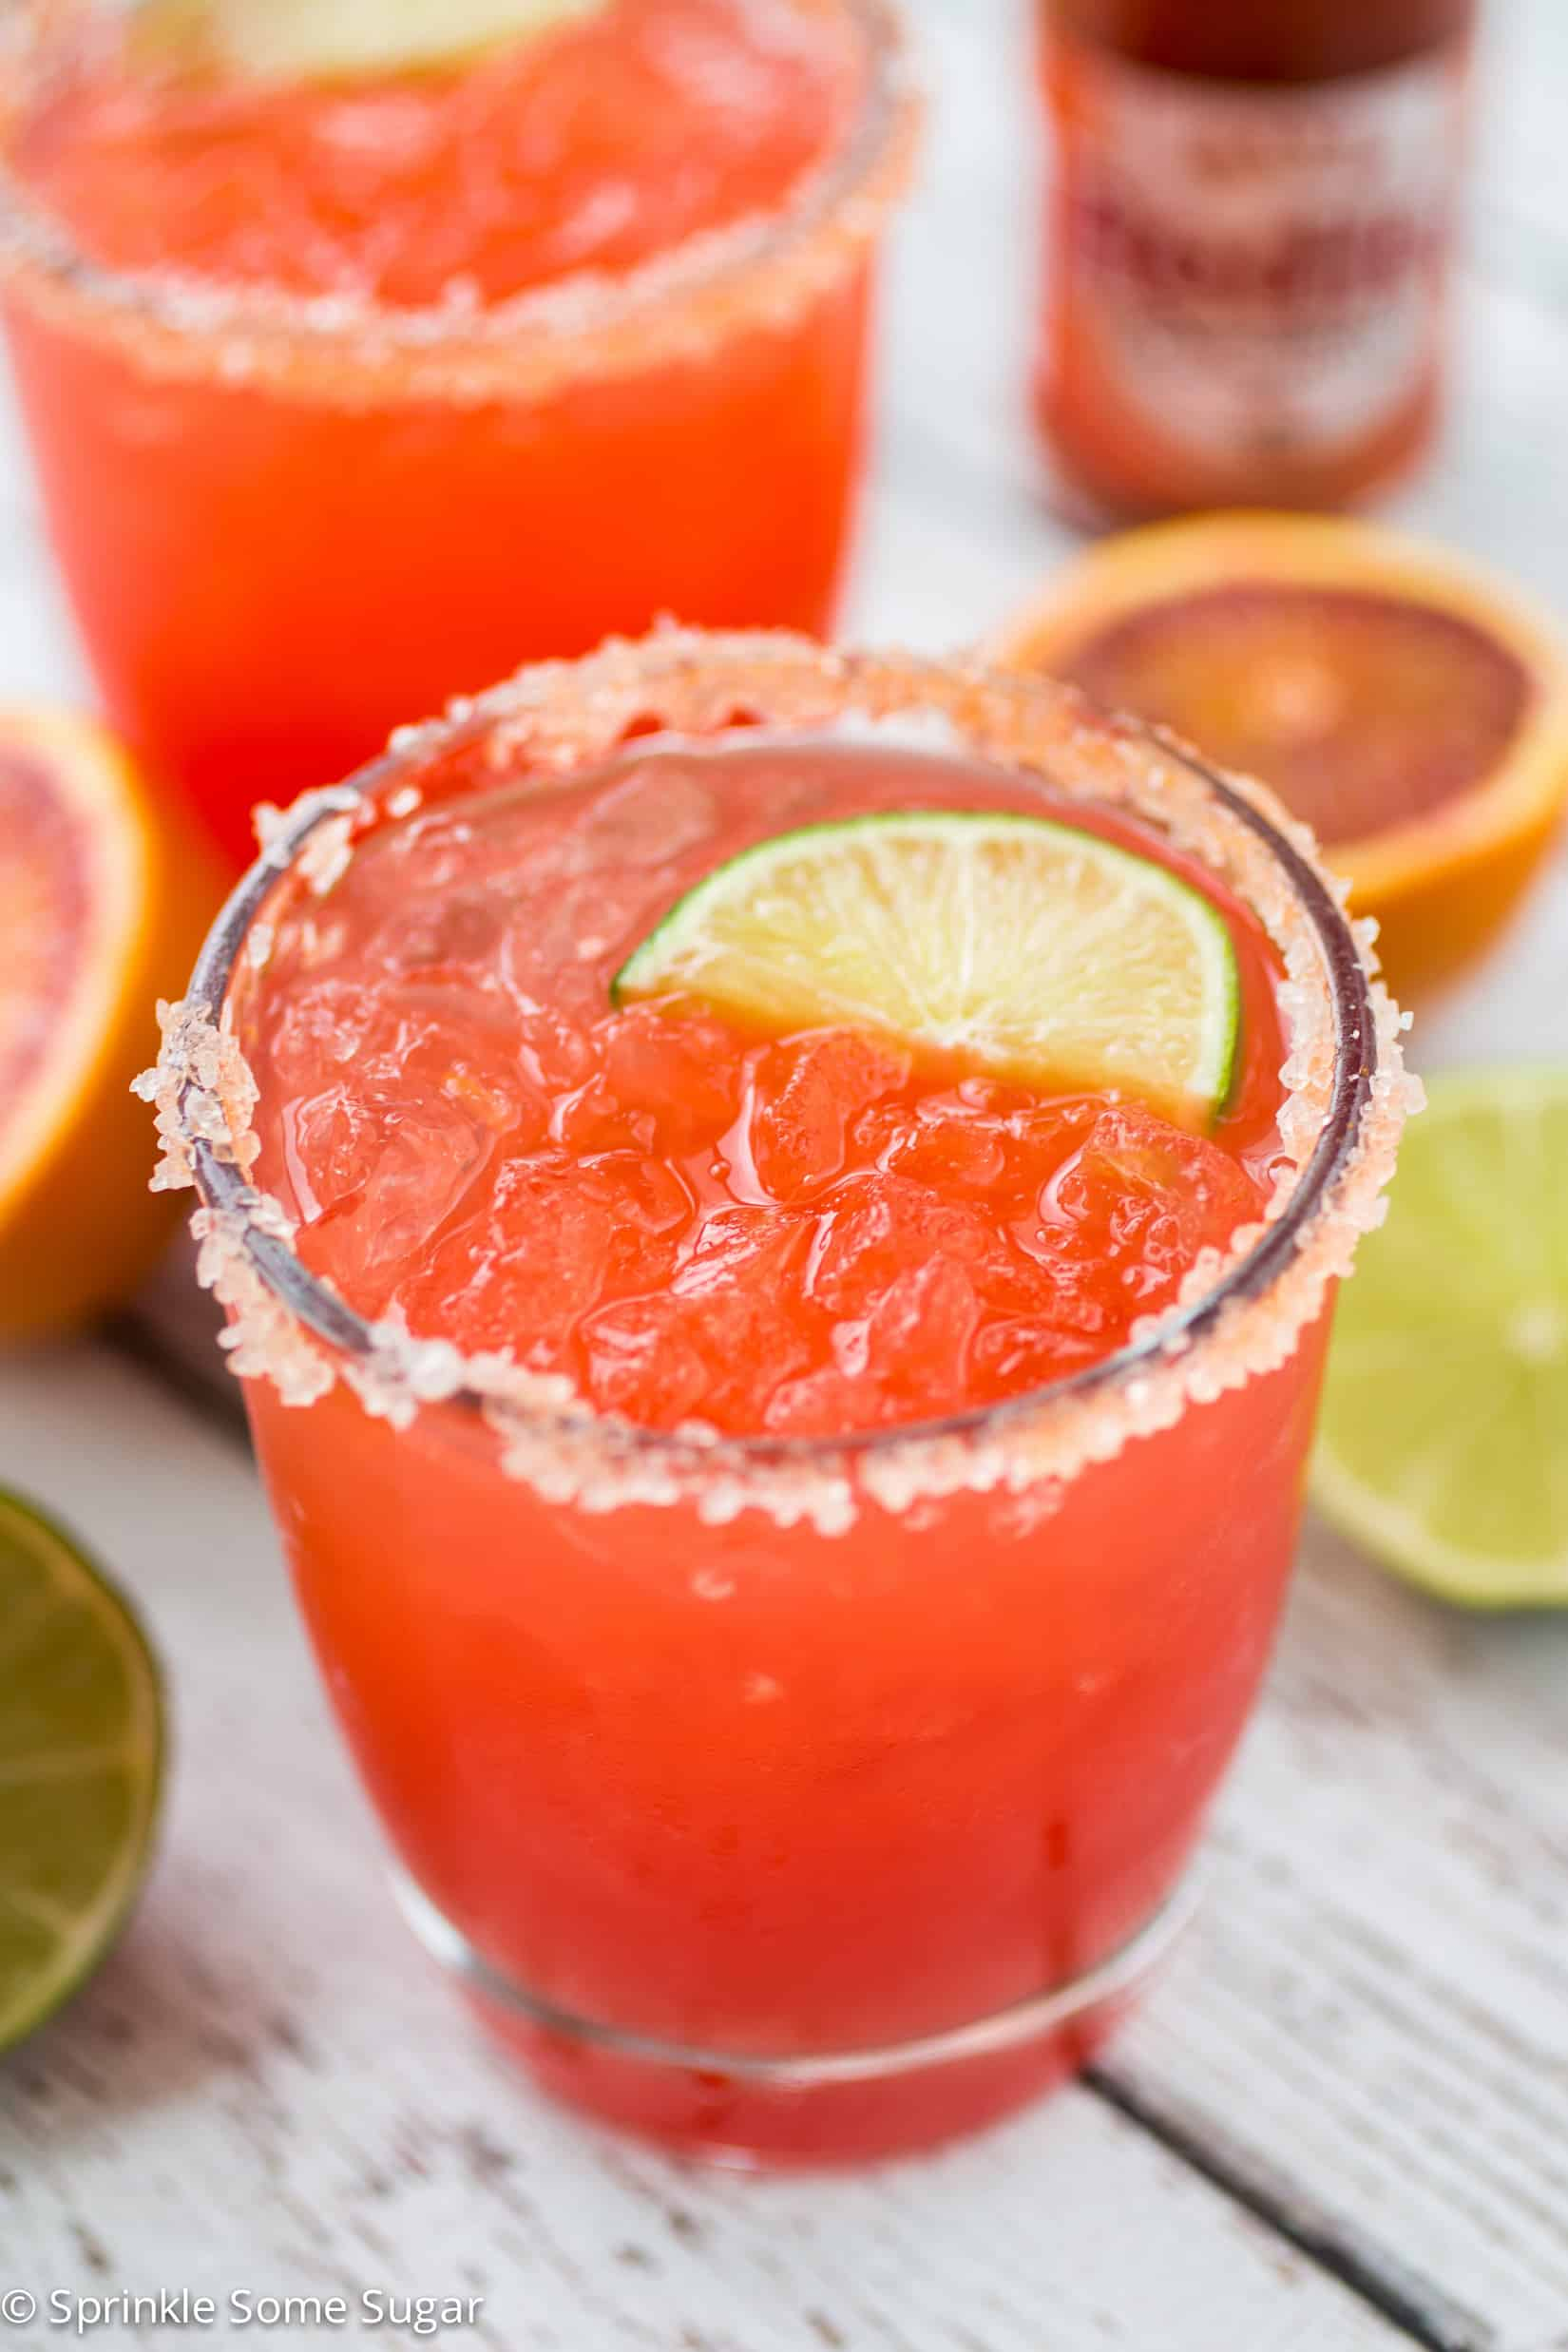 Spicy Blood Orange Margaritas - Margaritas made with freshly squeezed blood orange juice and a few dashes of hot sauce for a sweet and spicy kick!